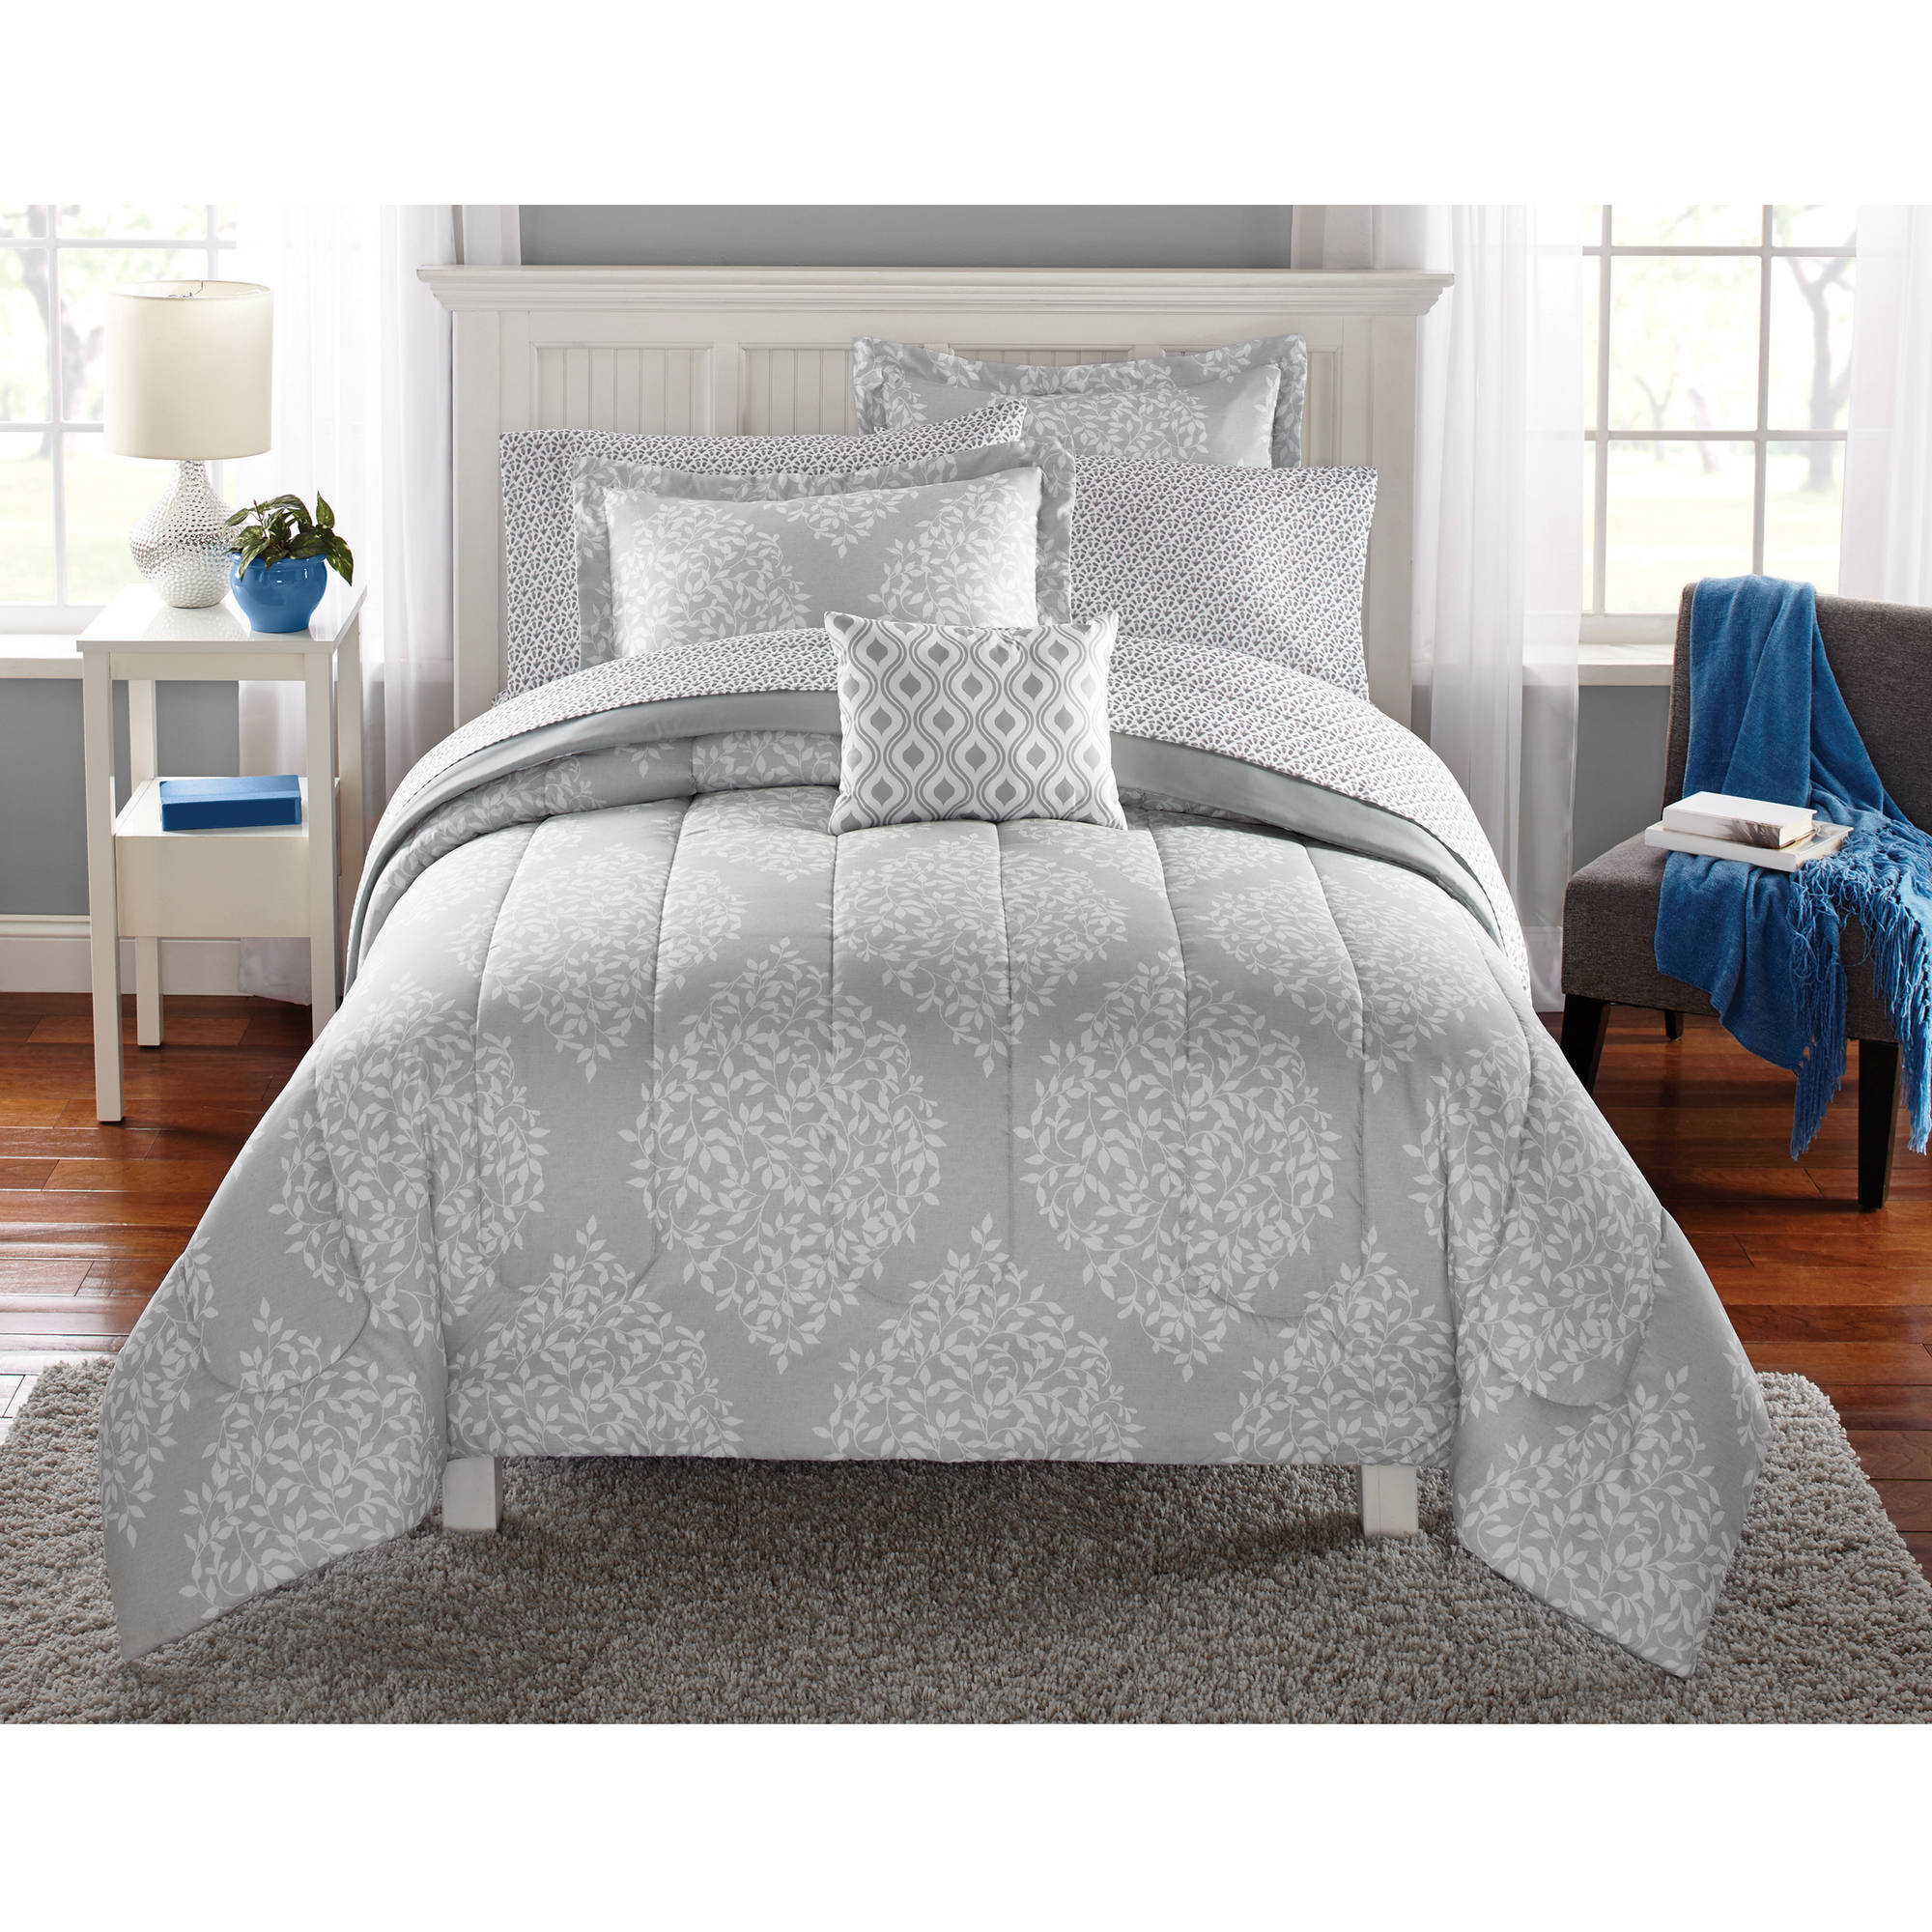 microfiber pc bedding king comforter set queen printed in scroll soft size bag a bed isla alternative ultra down paisley